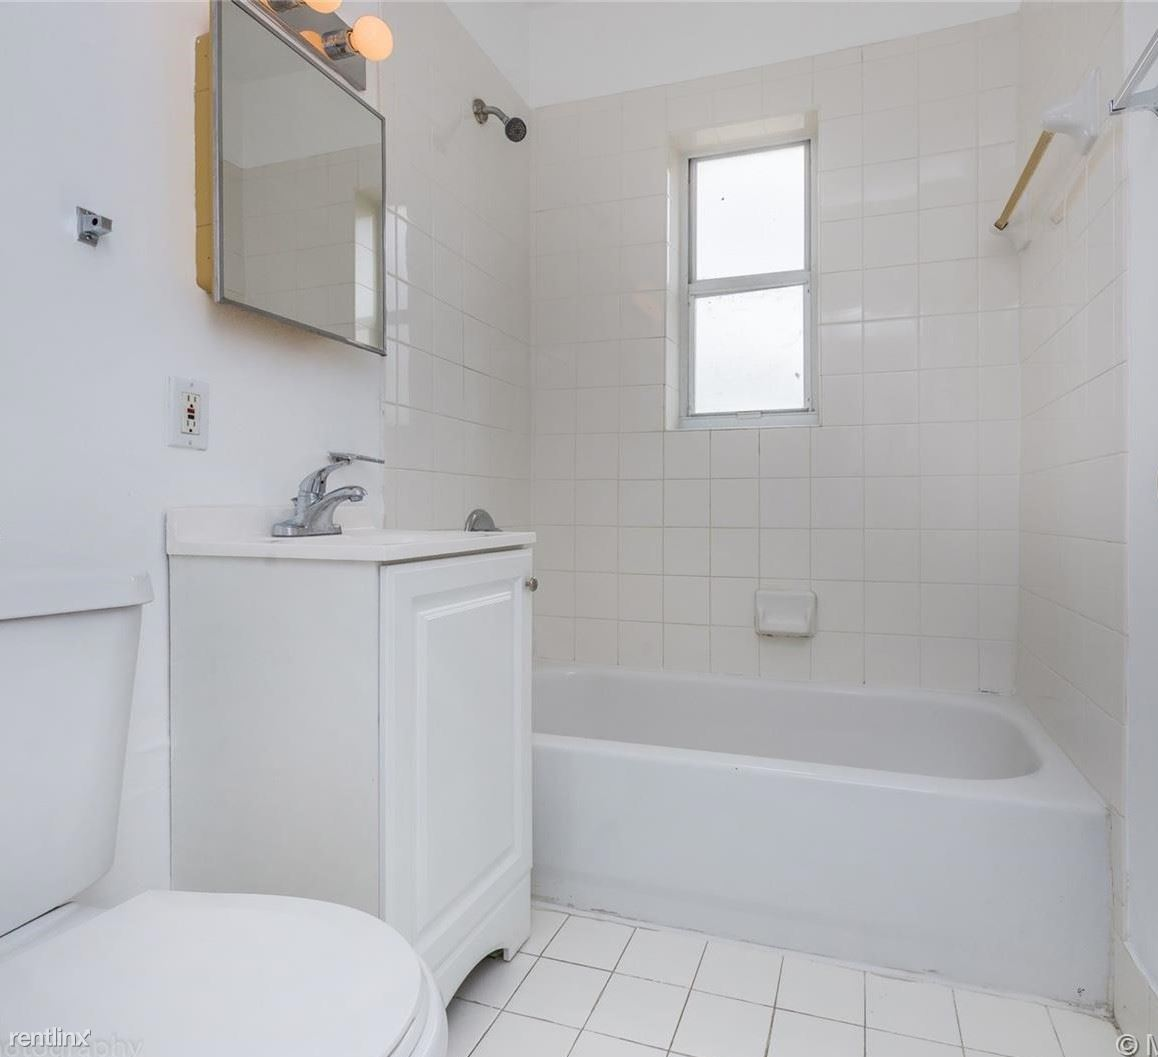 300 NW 85th Street Rd - 2200USD / month